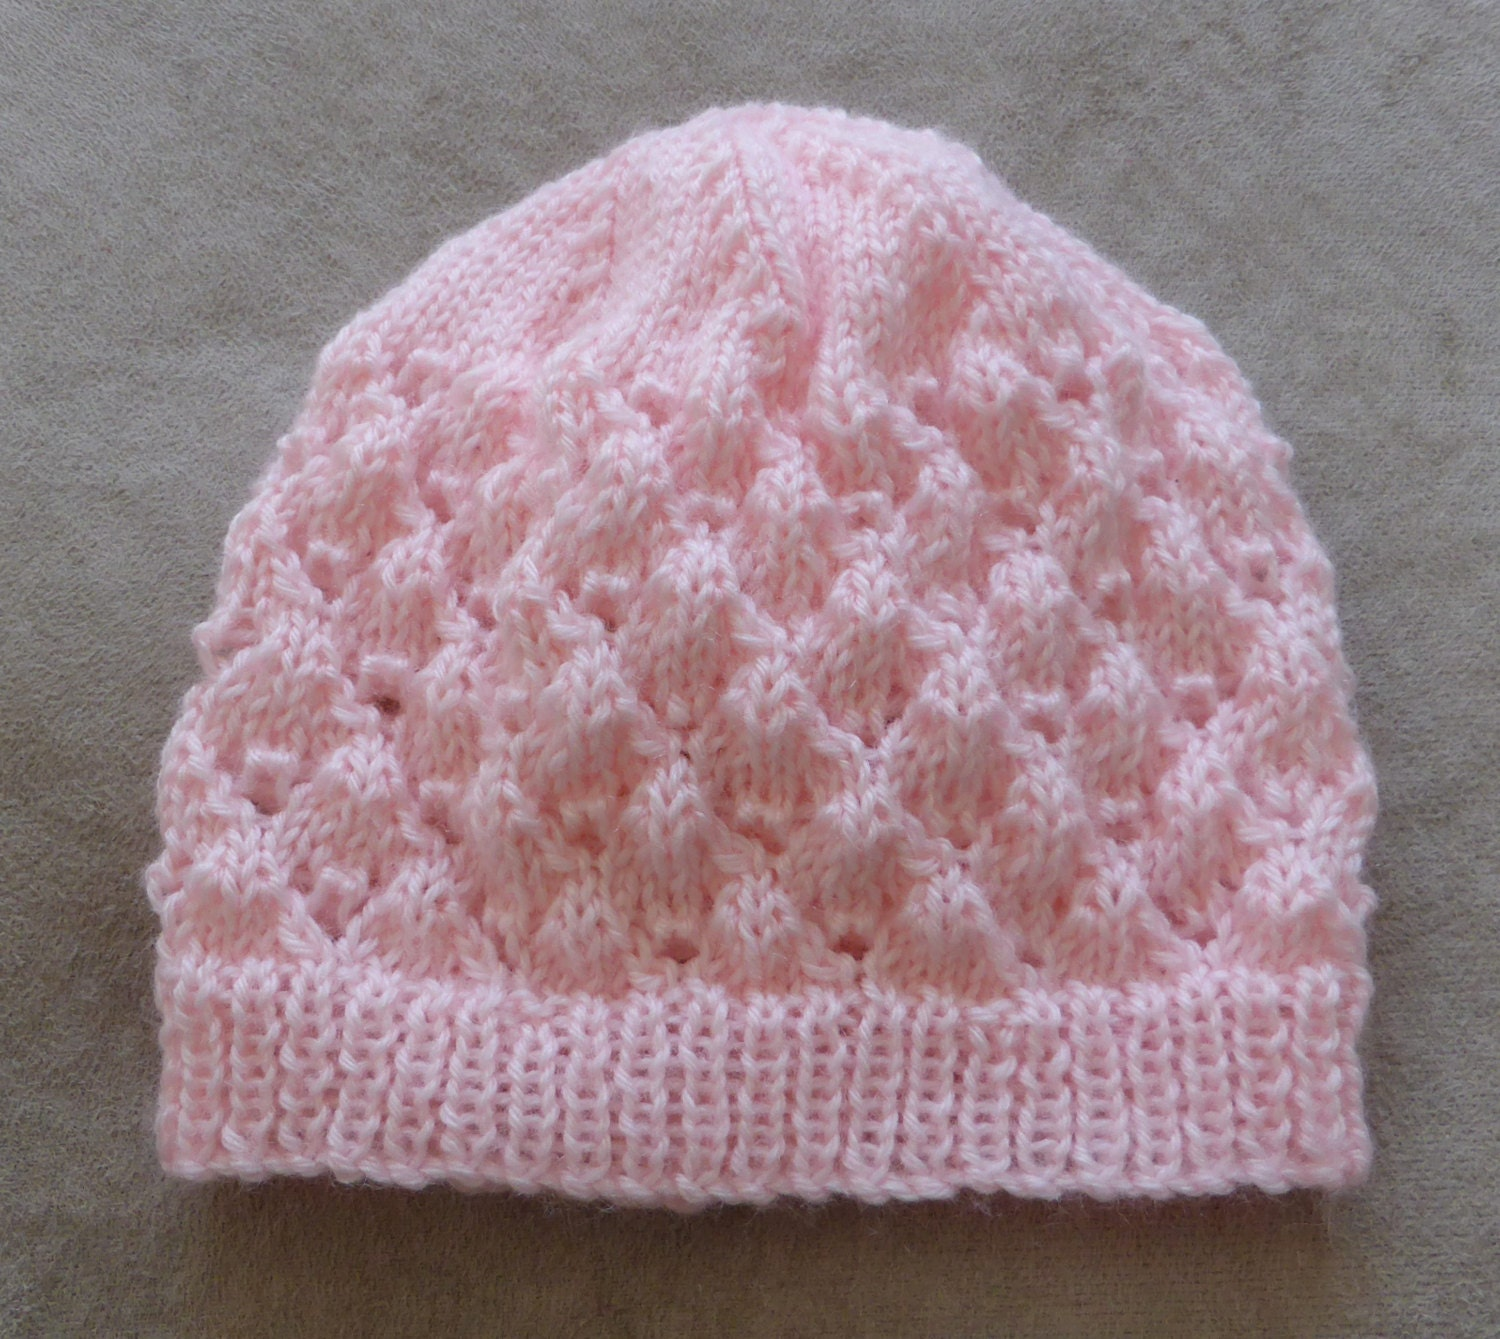 Knitting Pattern For A Toddlers Beanie : Babies 4ply lace Beanie PDF knitting pattern Molly